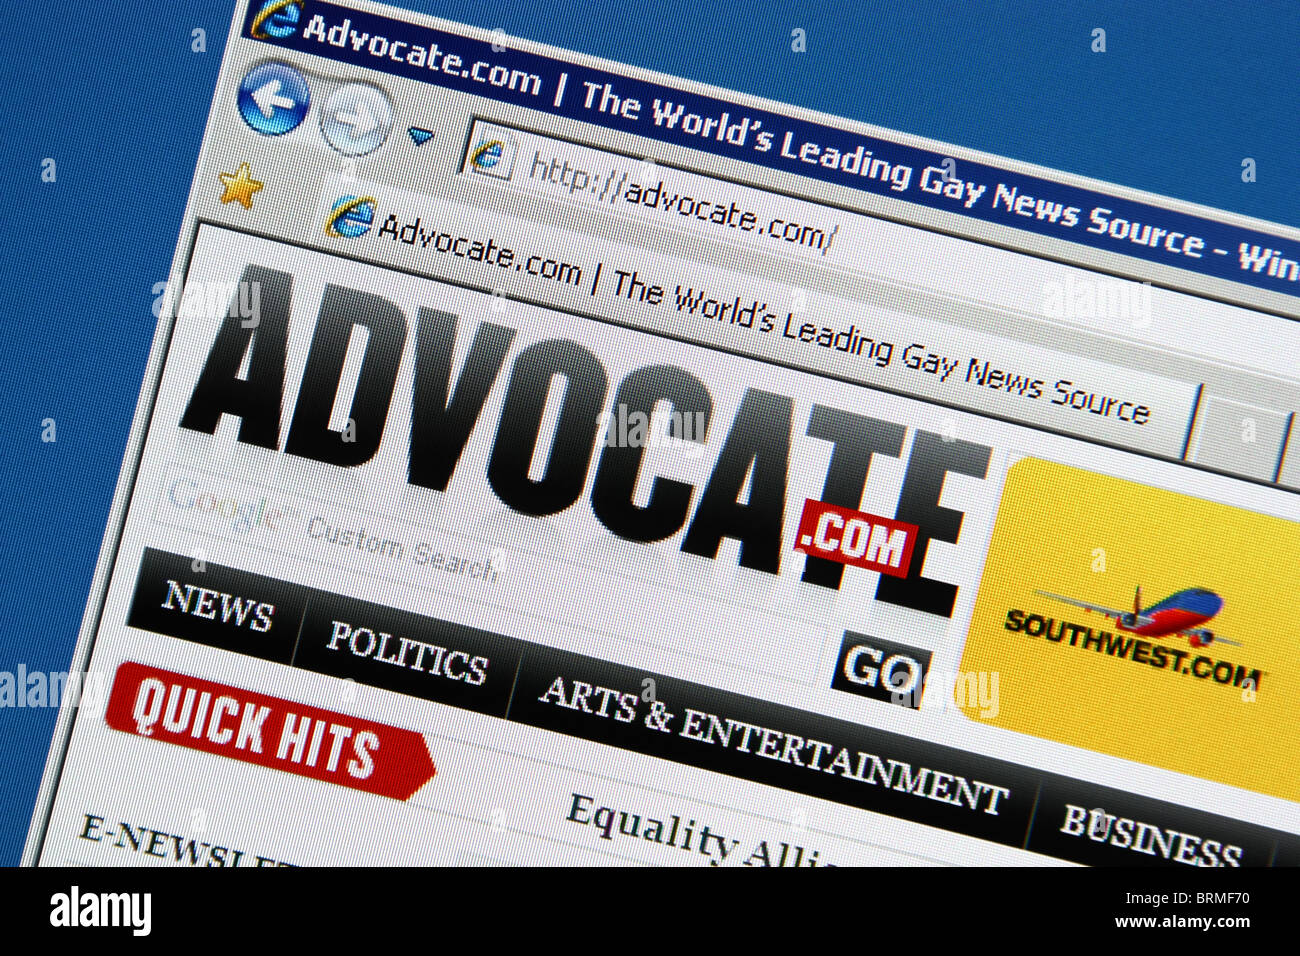 Gay news online